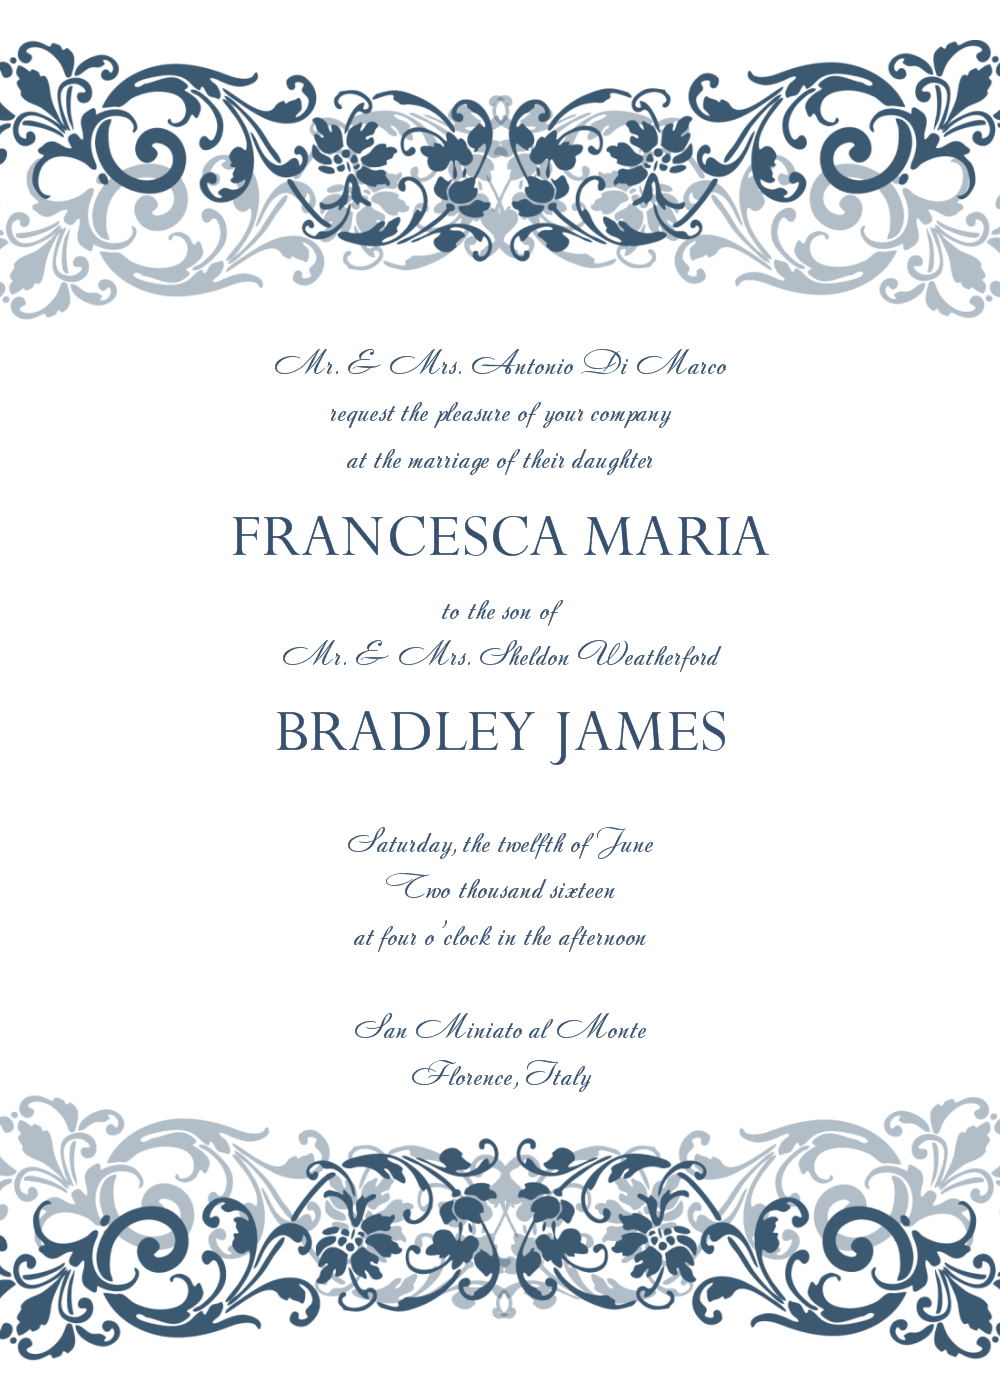 Vintage wedding invitation templates photoshop